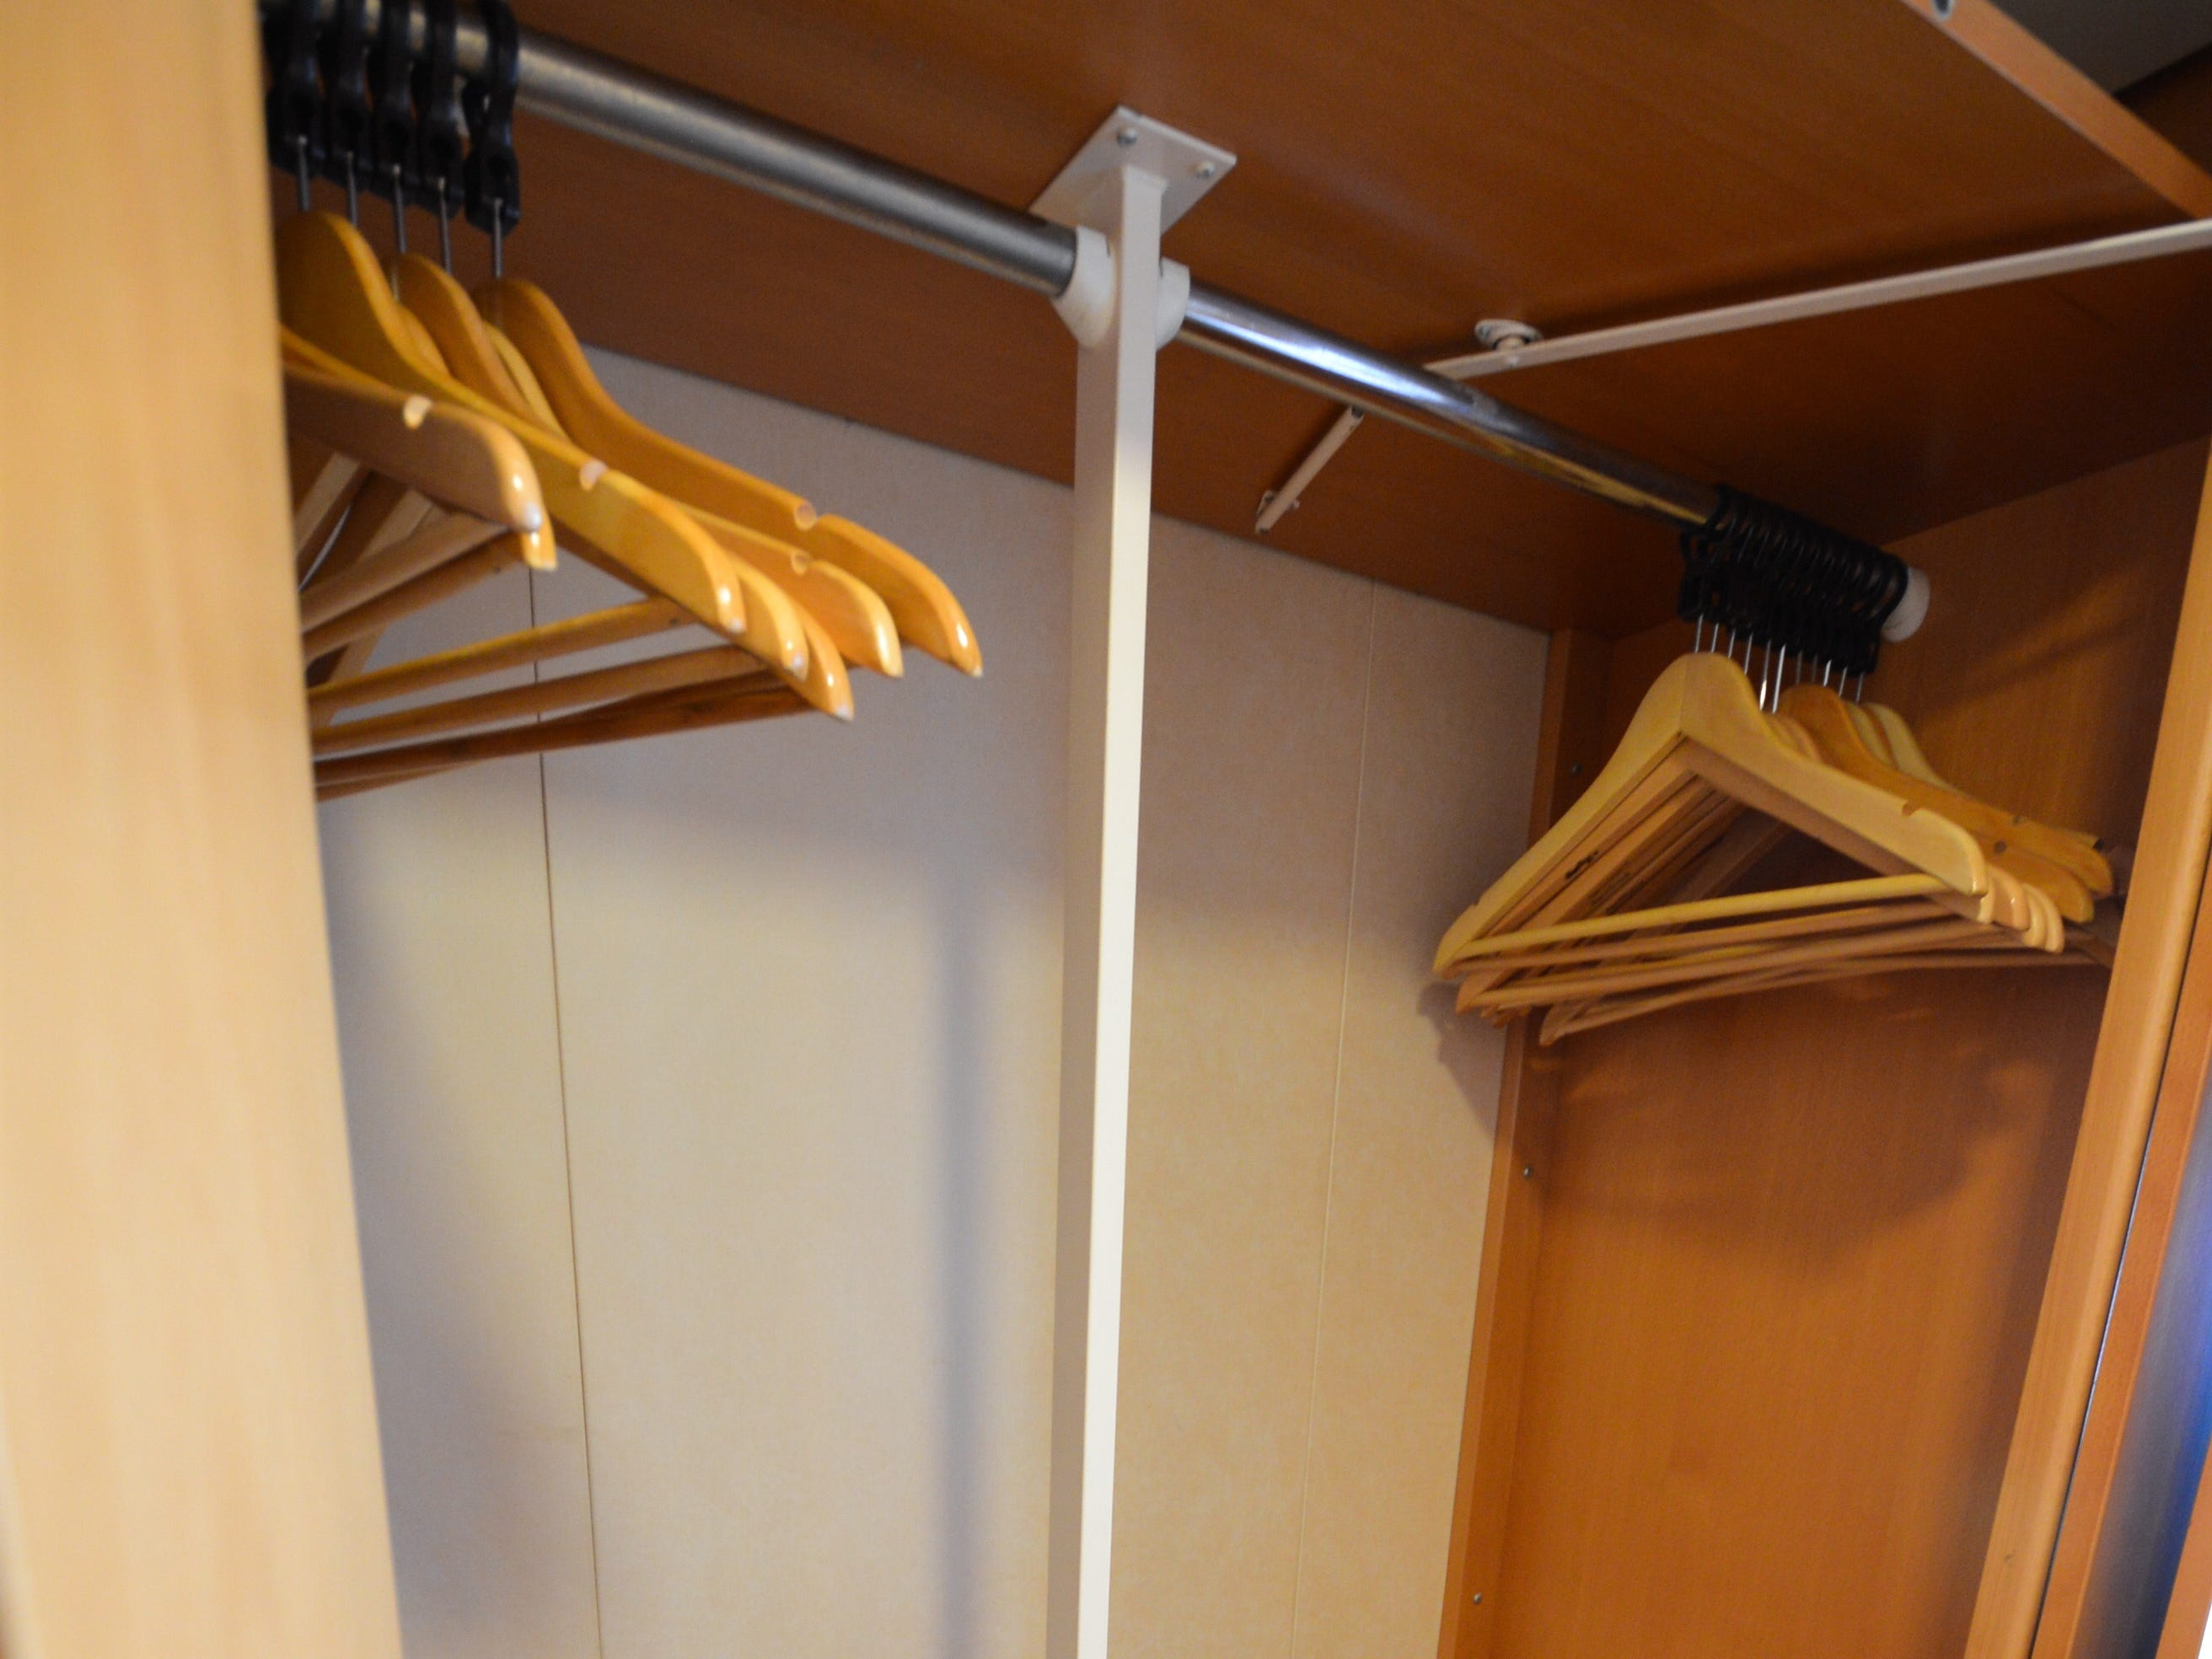 Closets in Ocean View cabins have room for hanging clothes as well as shelving.